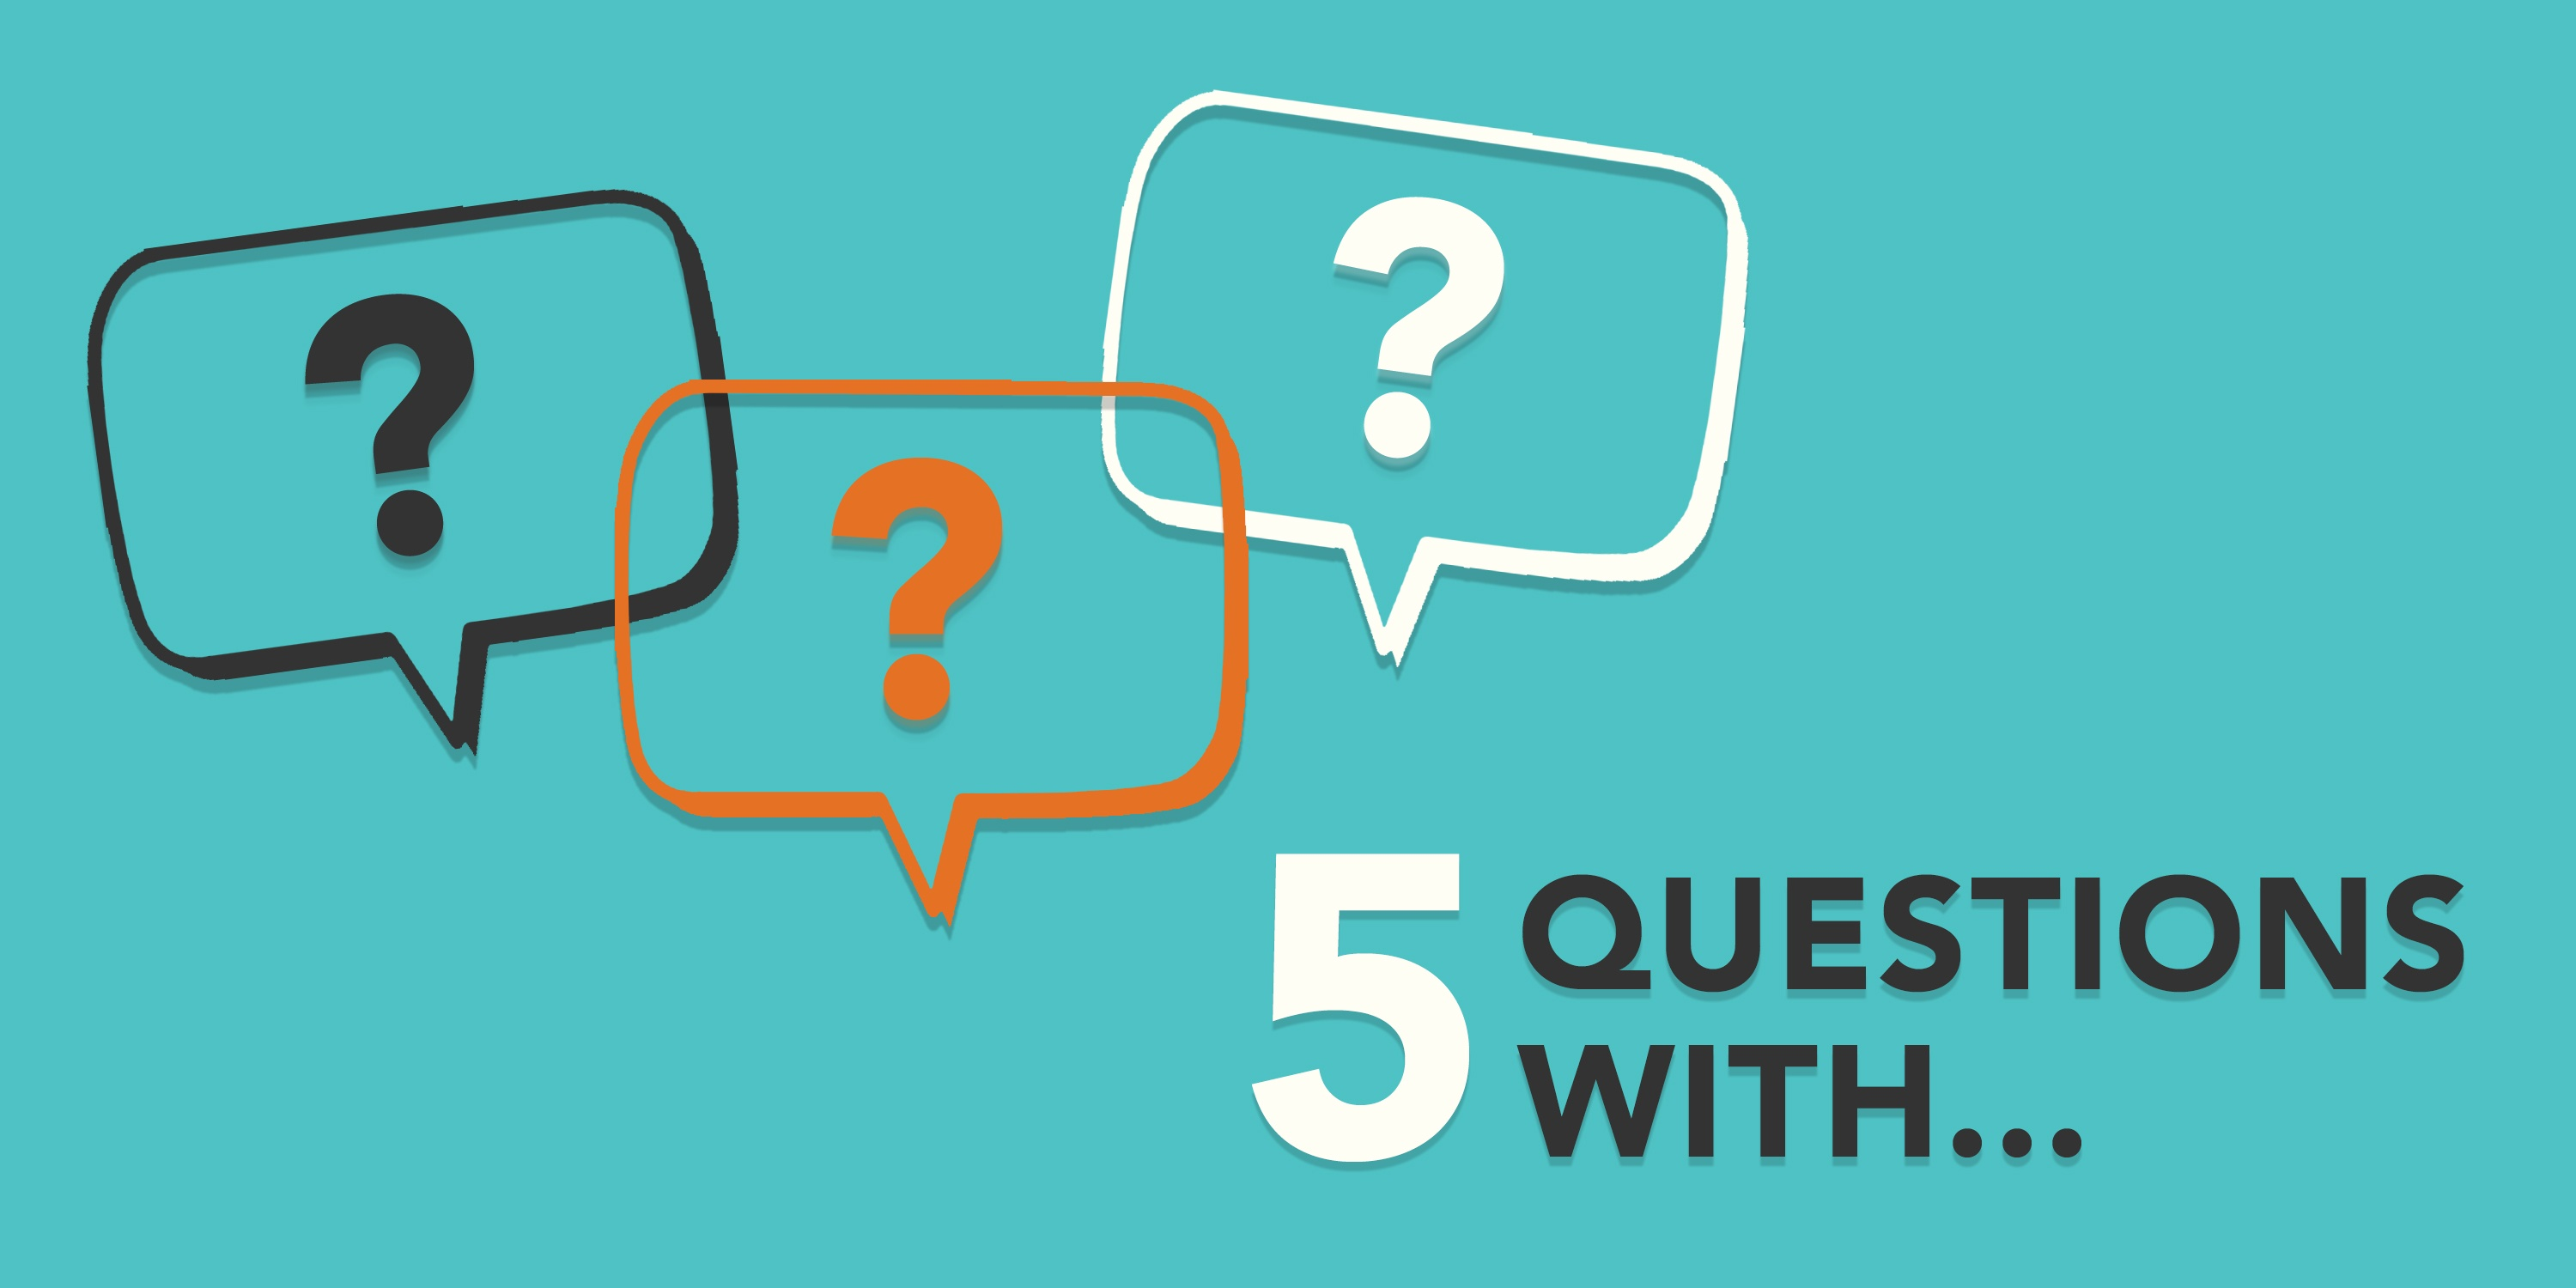 5 Questions With... Blog Series